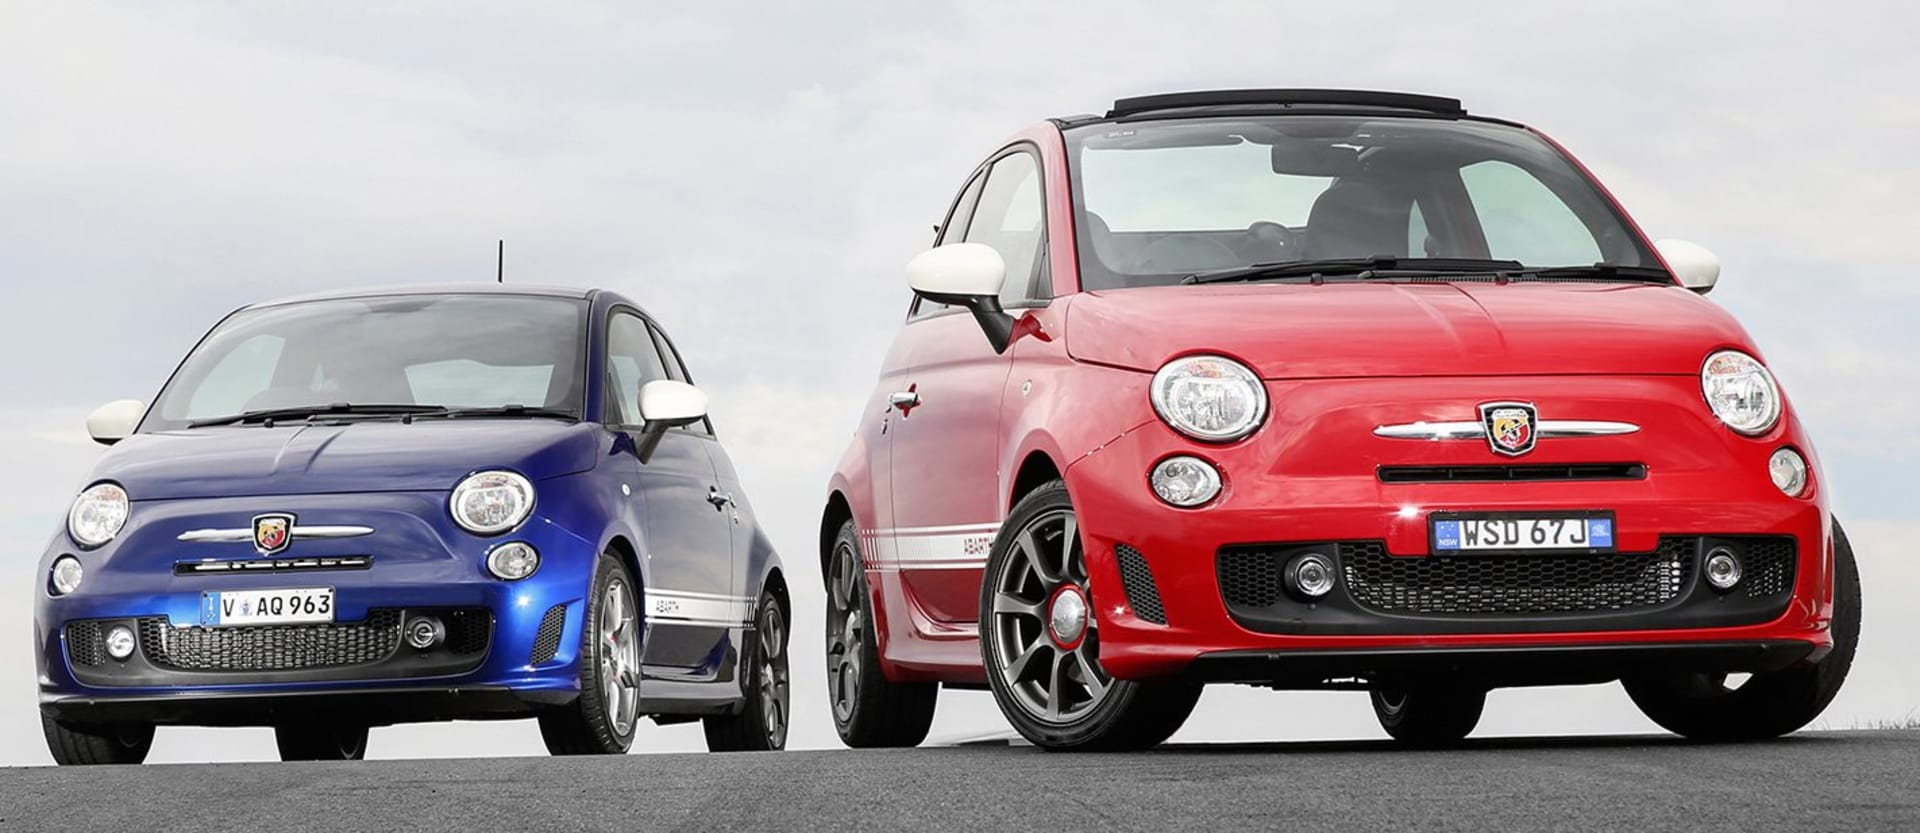 Fiat 595 Abarth Front Blue Red Jpg